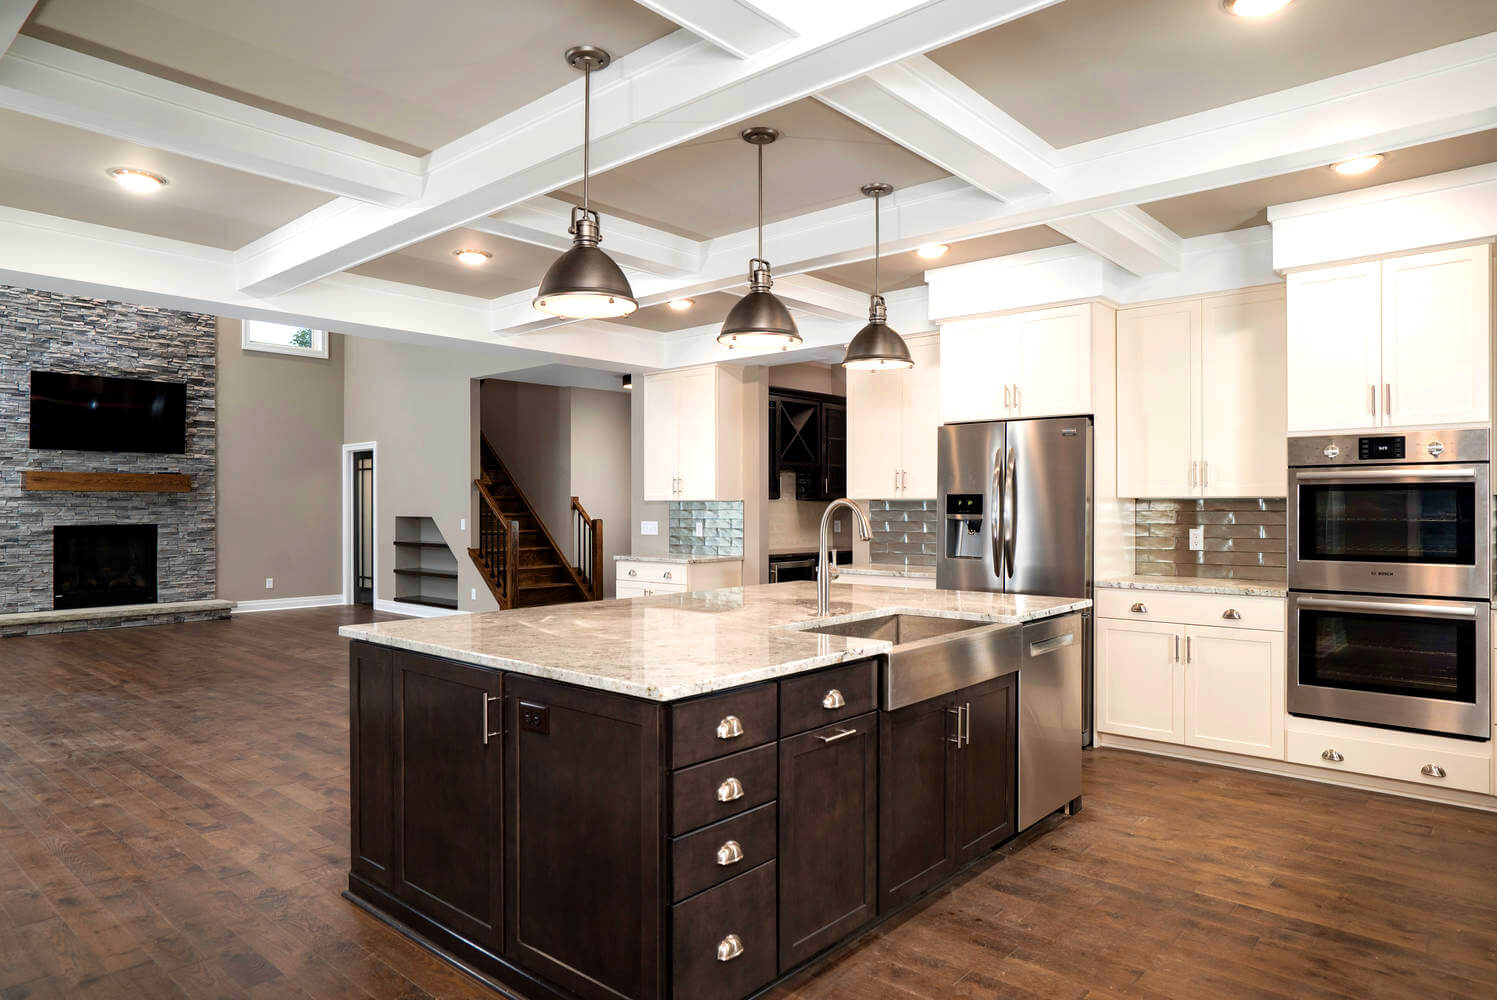 Kitchen Design Jobs Buffalo Ny Family Kitchen Alliance Homes